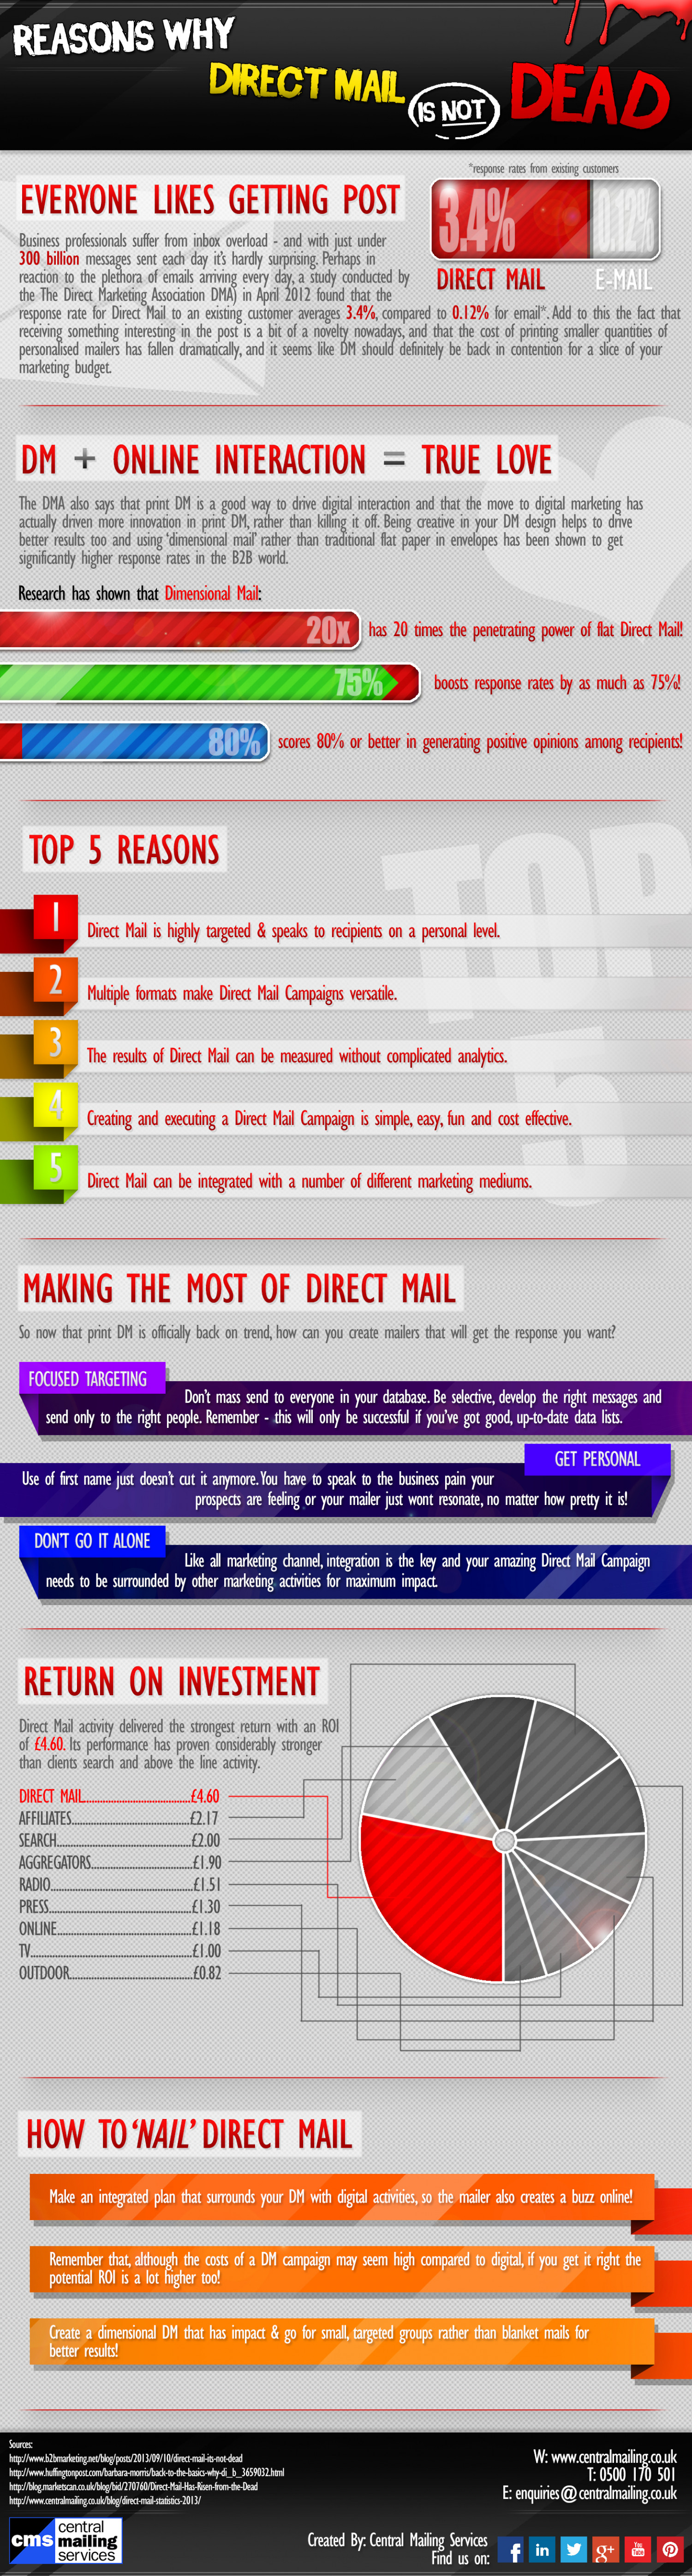 Reasons Why Direct Mail is Not Dead Infographic